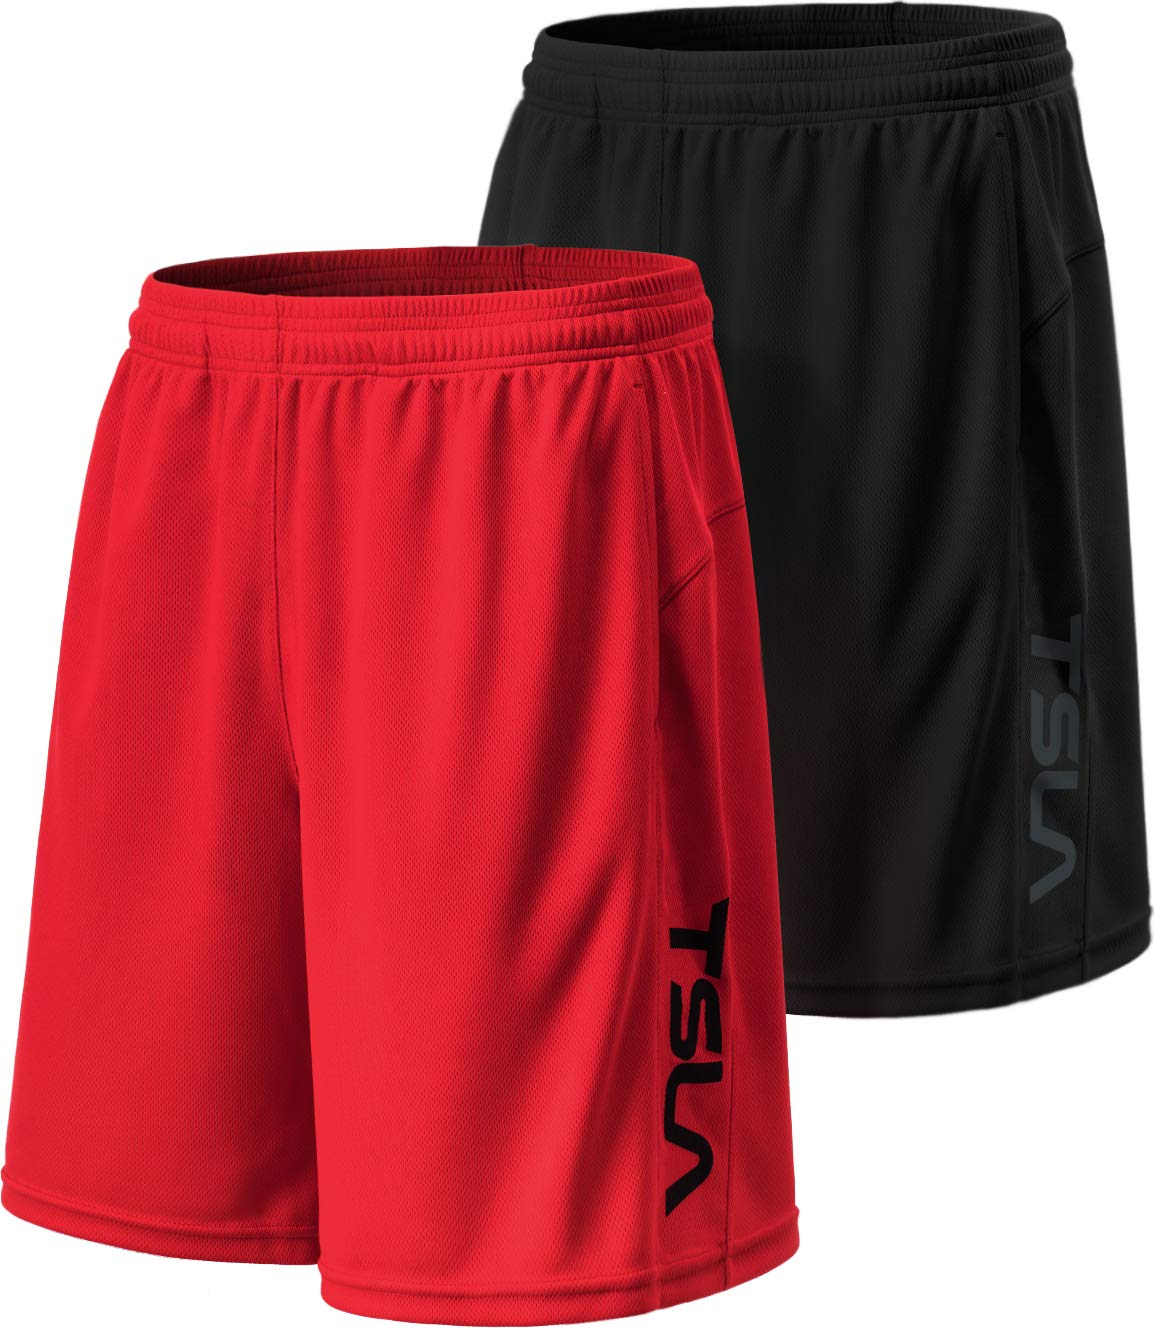 TSLA Men's HyperDri Cool Quick-Dry Active Lightweight Workout Performance Shorts (Pack of 2), Hyper Dri Dual Pack(mbh22) - Black/Red, Small